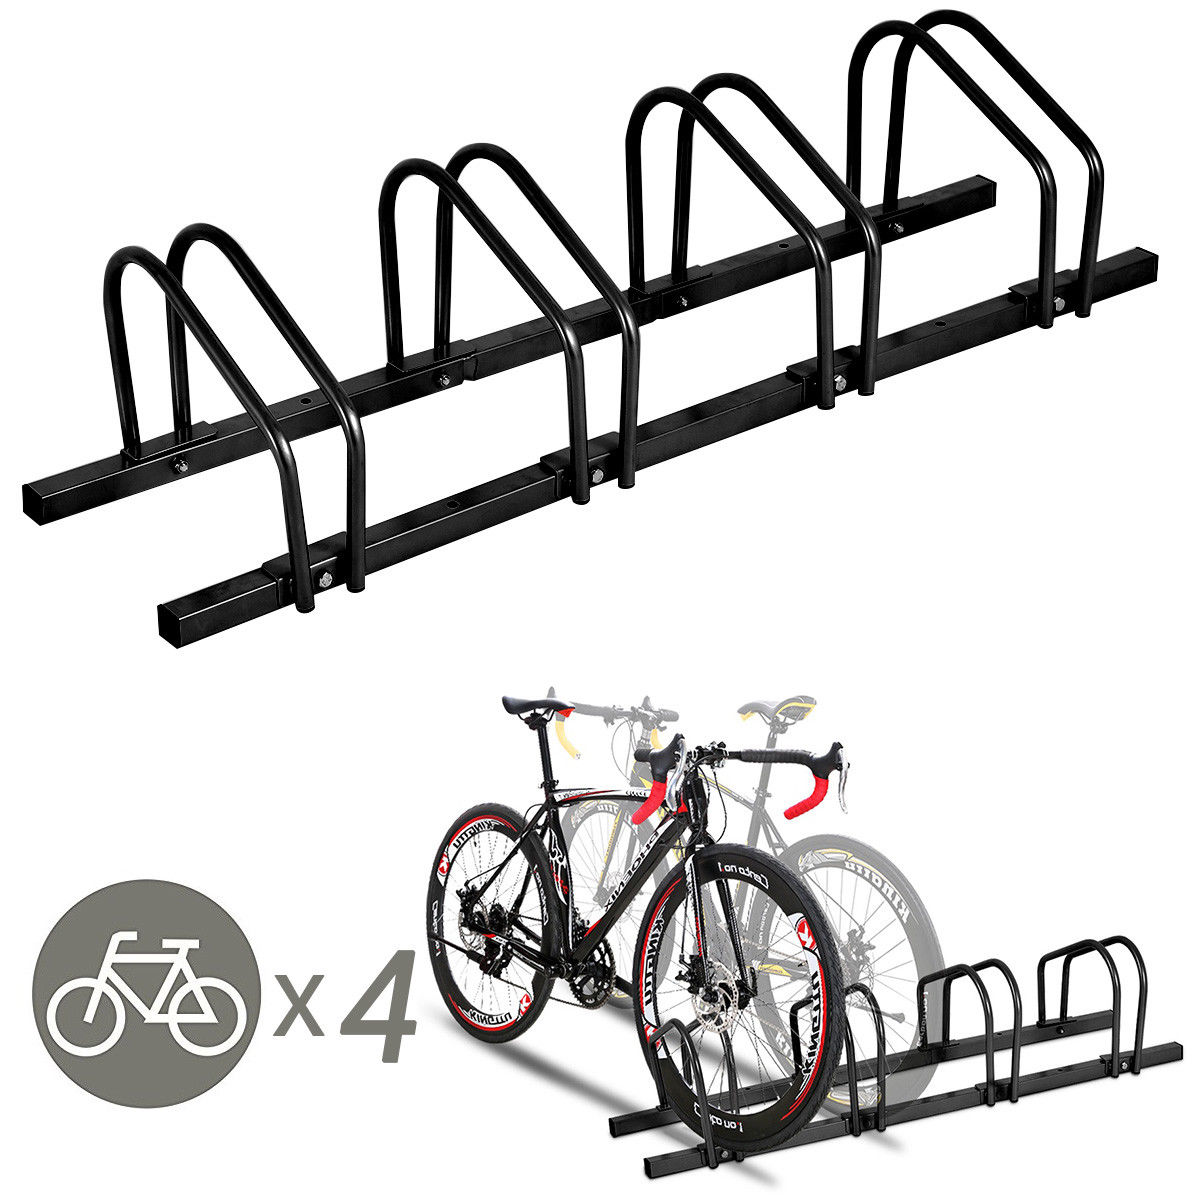 Parking Garage Bike Rack Gymax 4 Bike Bicycle Stand Parking Garage Storage Cycling Rack Black